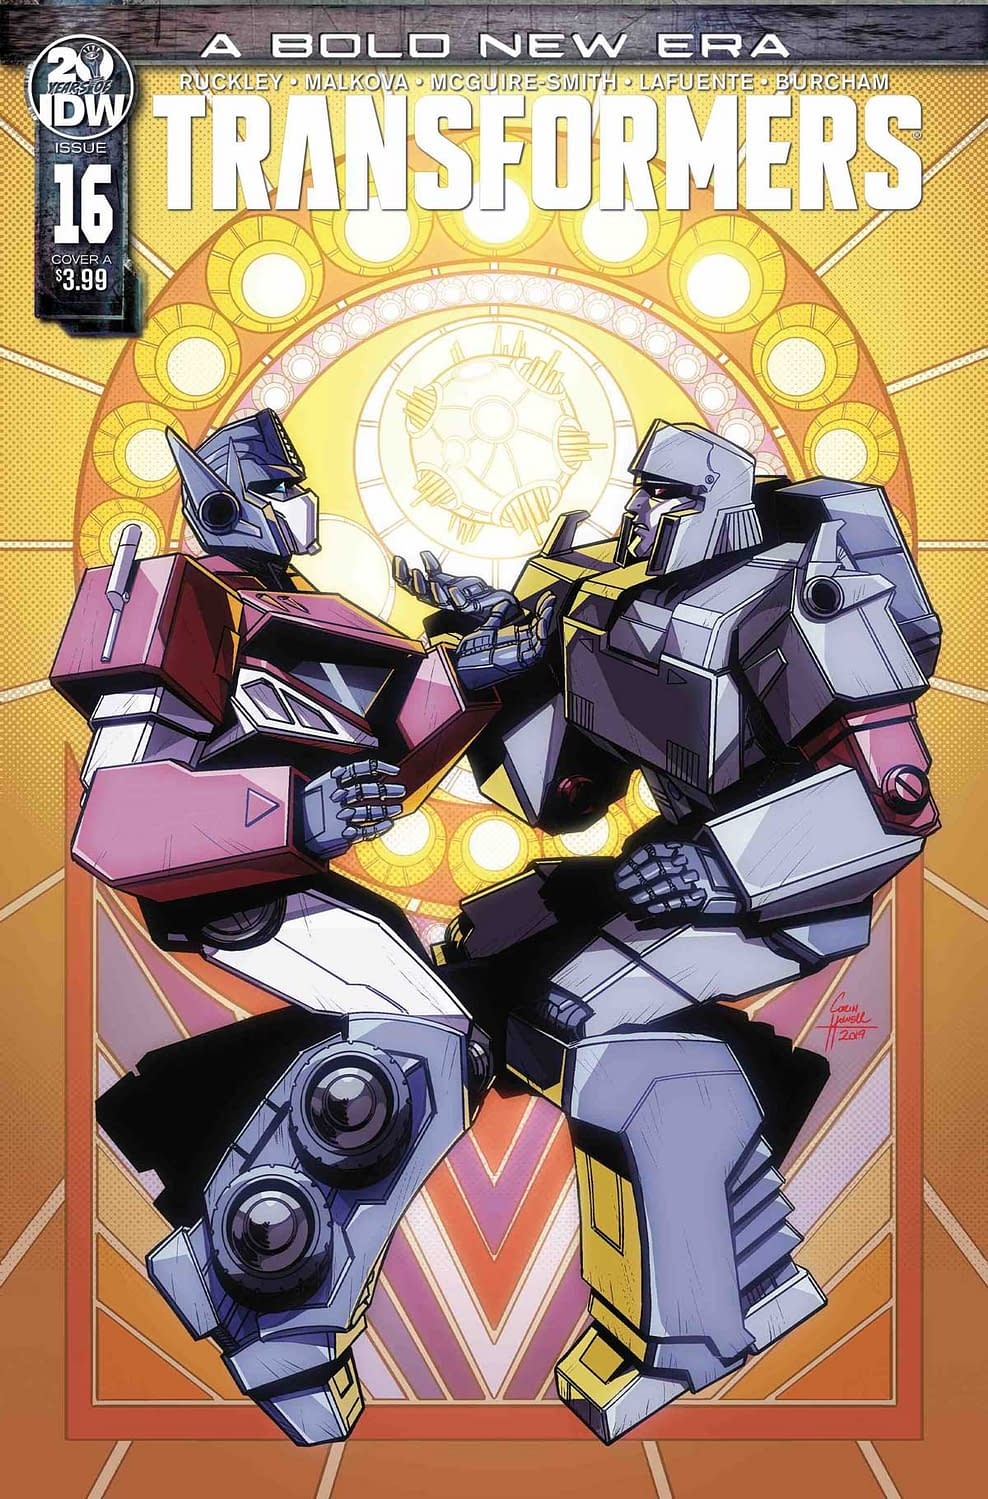 """REVIEW: Transformers #16 -- """"It's Hard To Sort Who's Supposed To Be Good And Who's Supposed To Be Bad"""""""